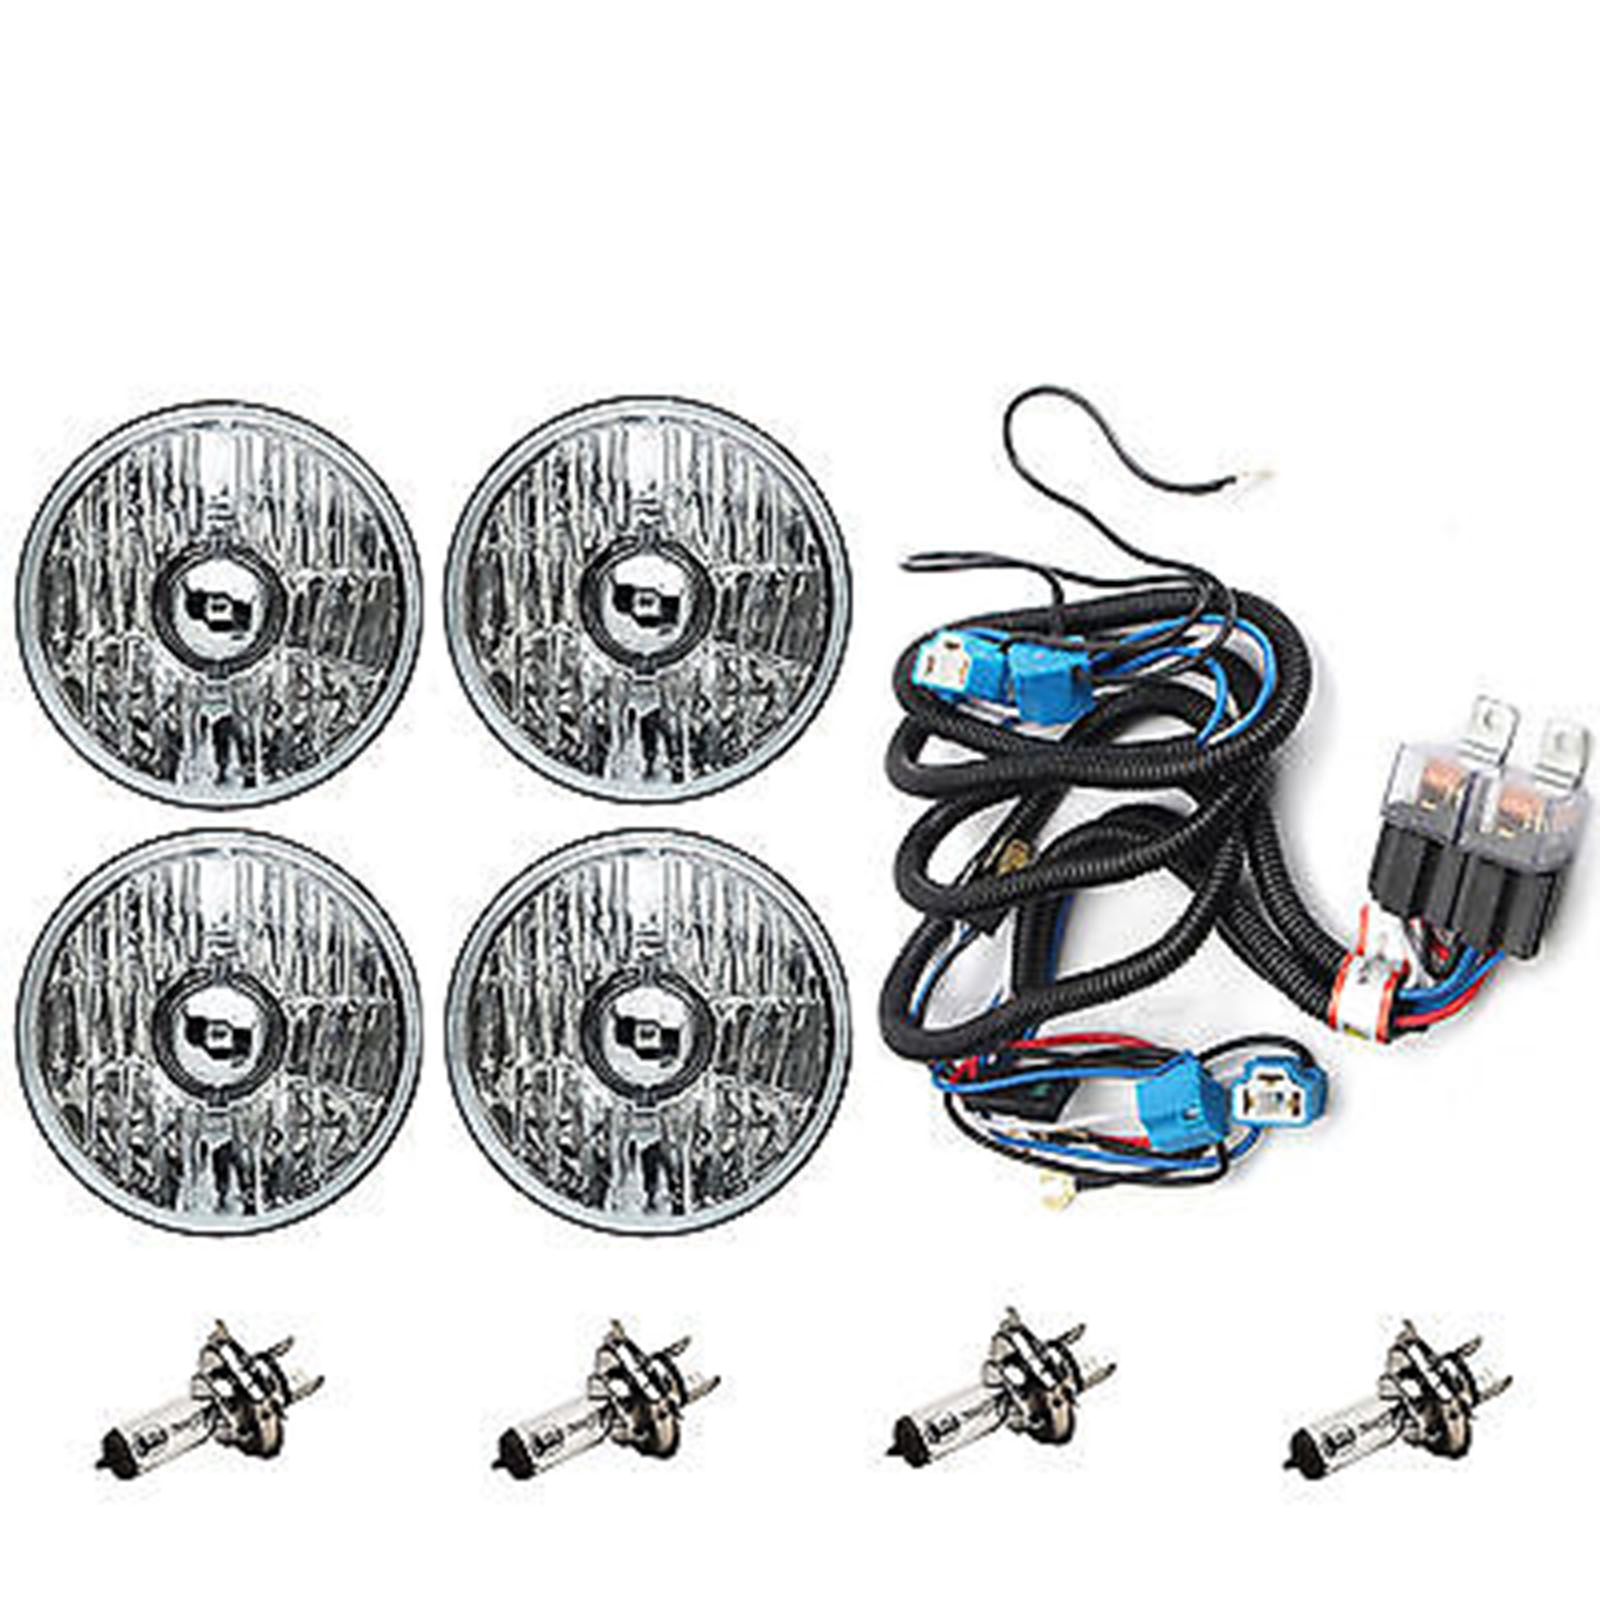 hight resolution of 5 3 4 crystal clear halogen headlight headlamp 60w light bulbs relay harness kit